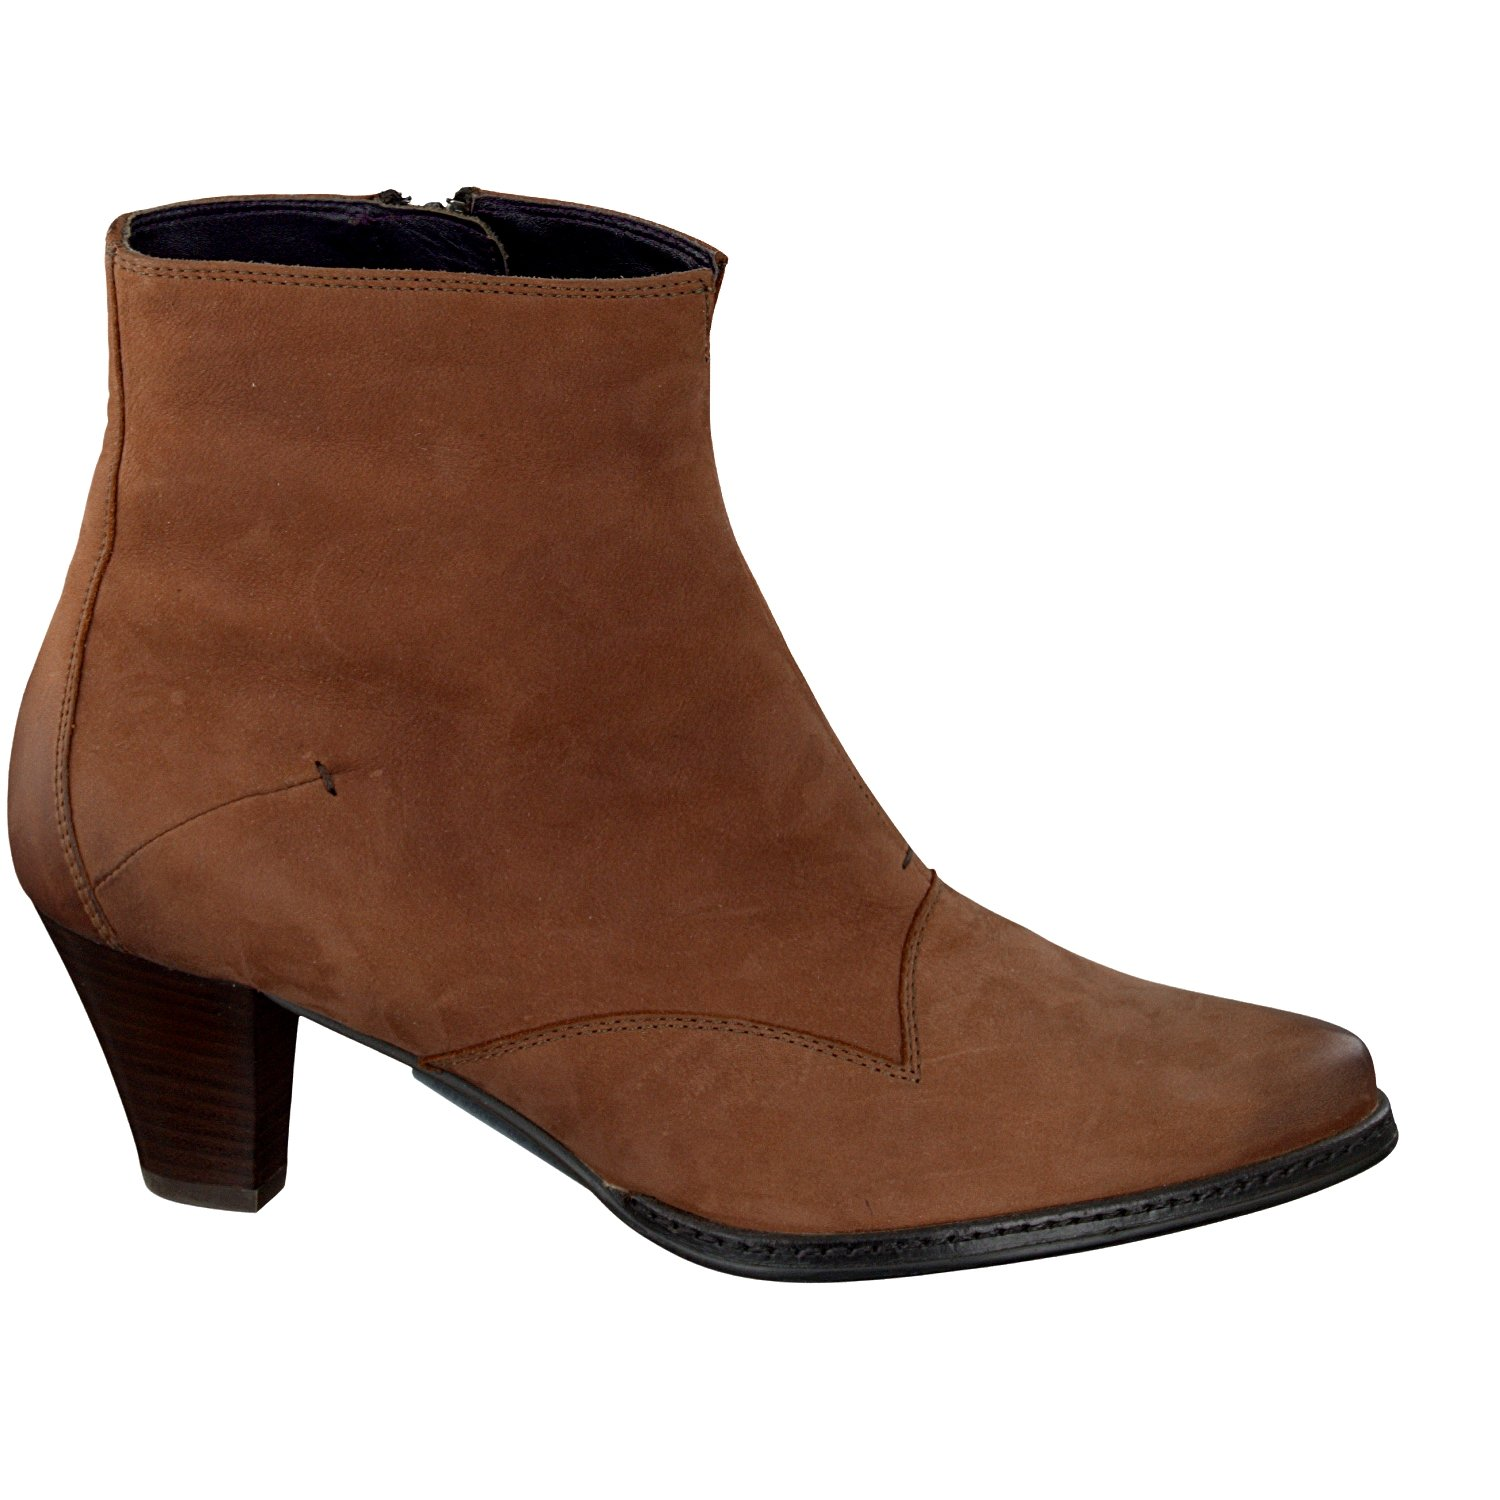 new style 9fd30 2c63d HÖGL - Ankle Boots Stiefelette braun Cognac 8-105722 (41 ...